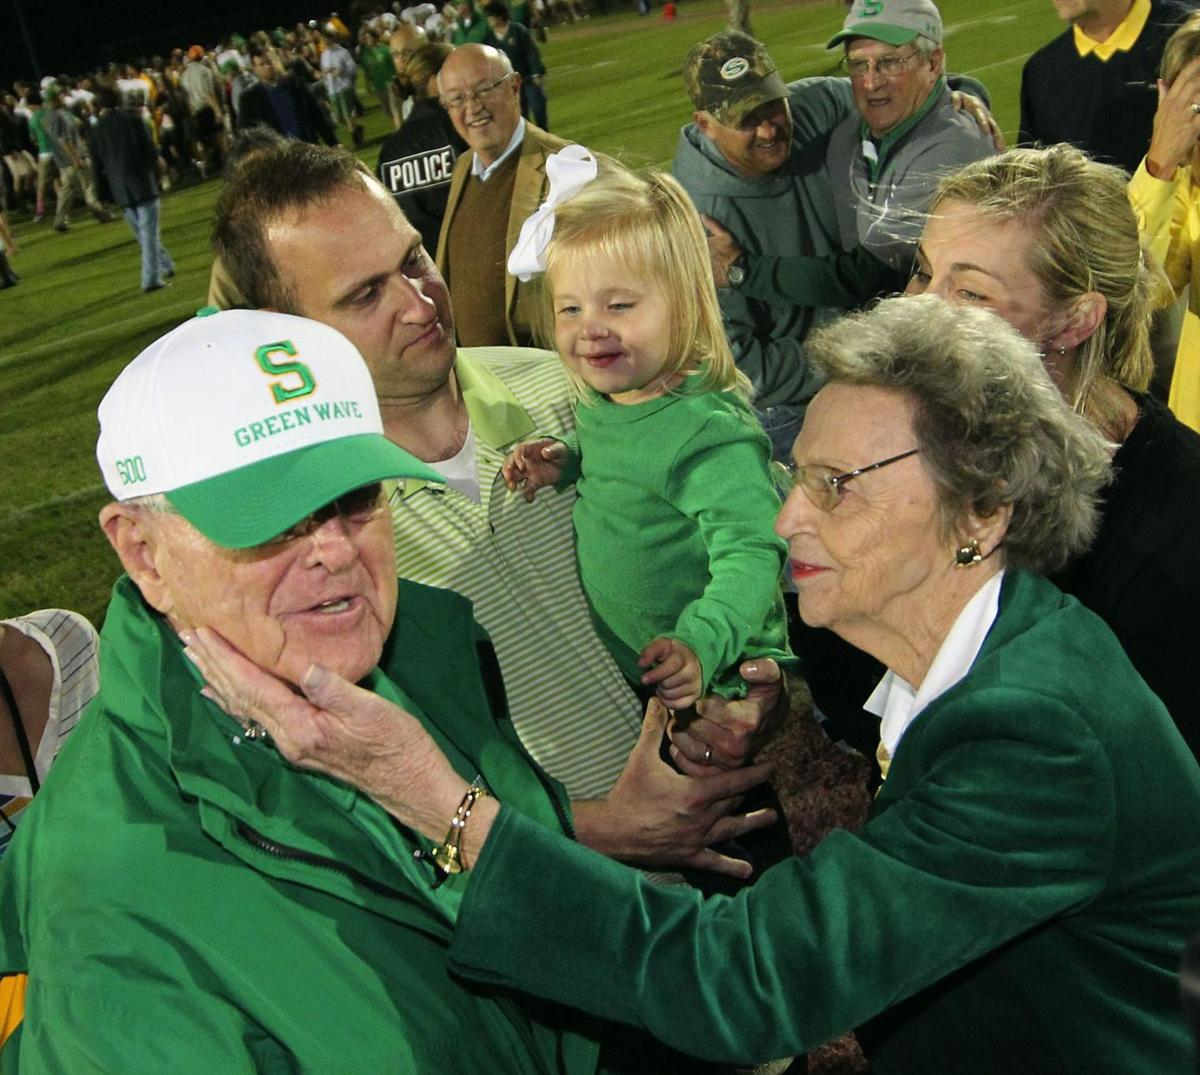 Memorable night for McKissickSAPAKOFF COLUMN: 'Great scene' for 600th victoryWhat you might not know about John McKissickJohn McKissick by the Numbers